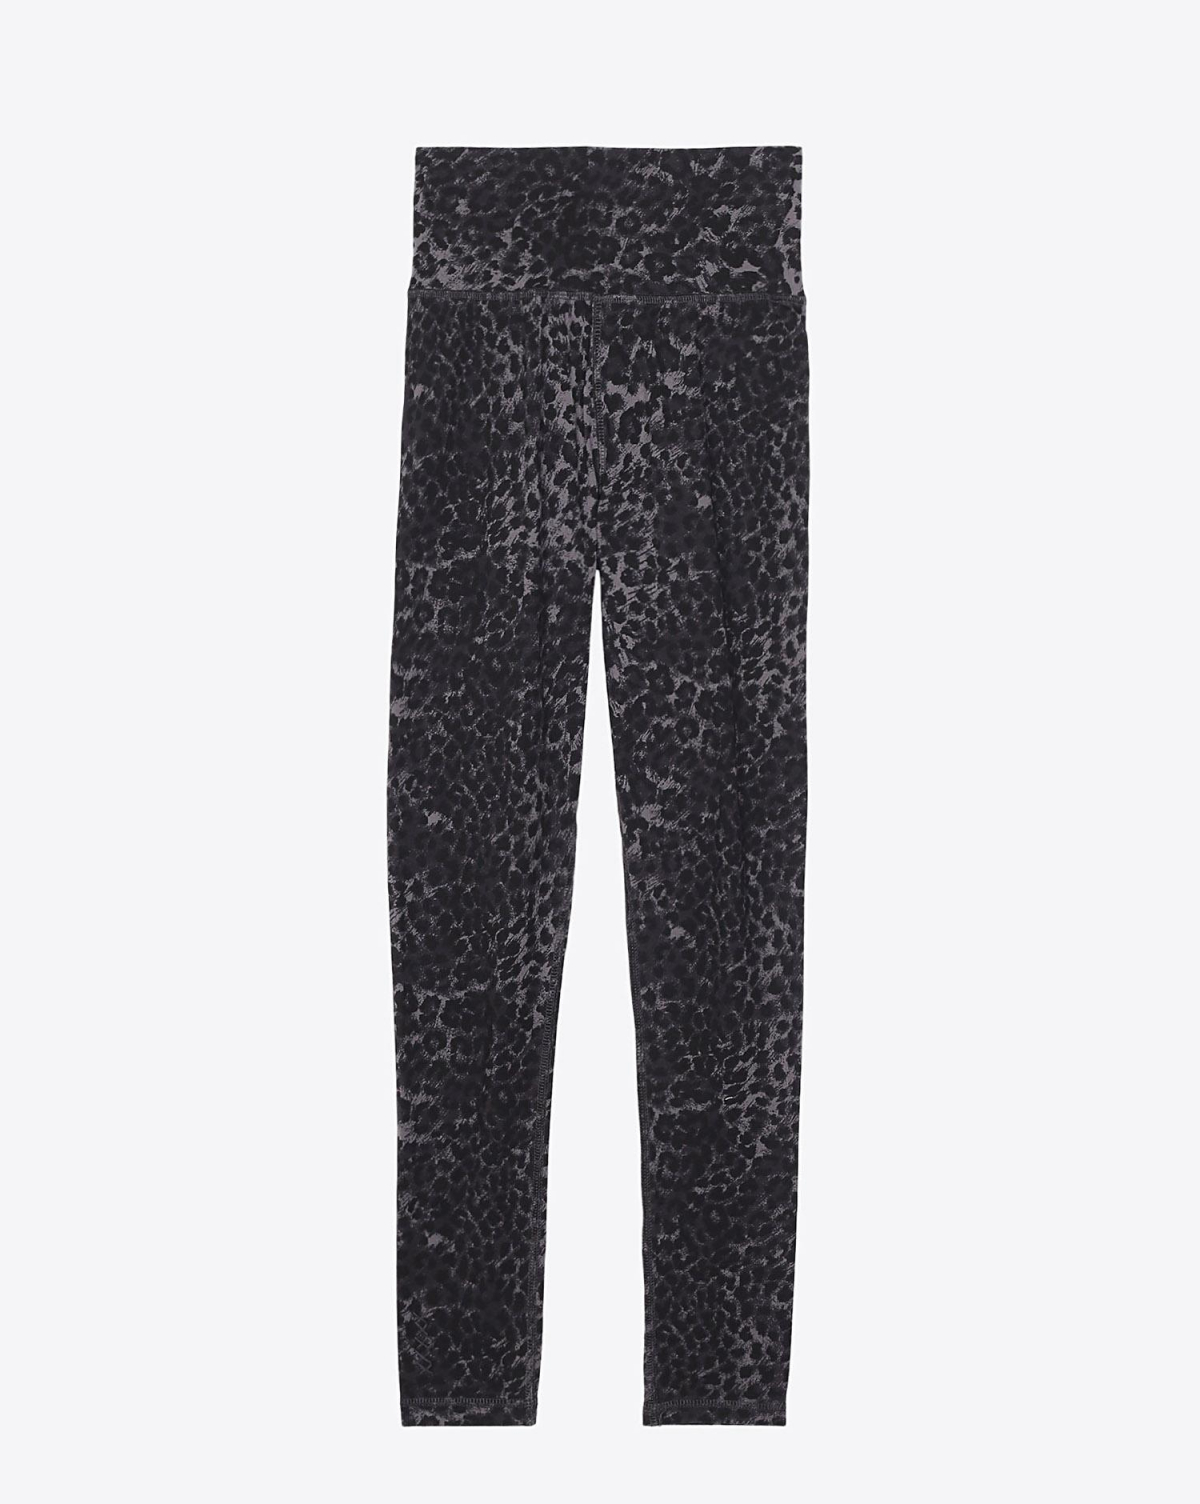 Ragdoll LA Leggings Anthracite Leopard